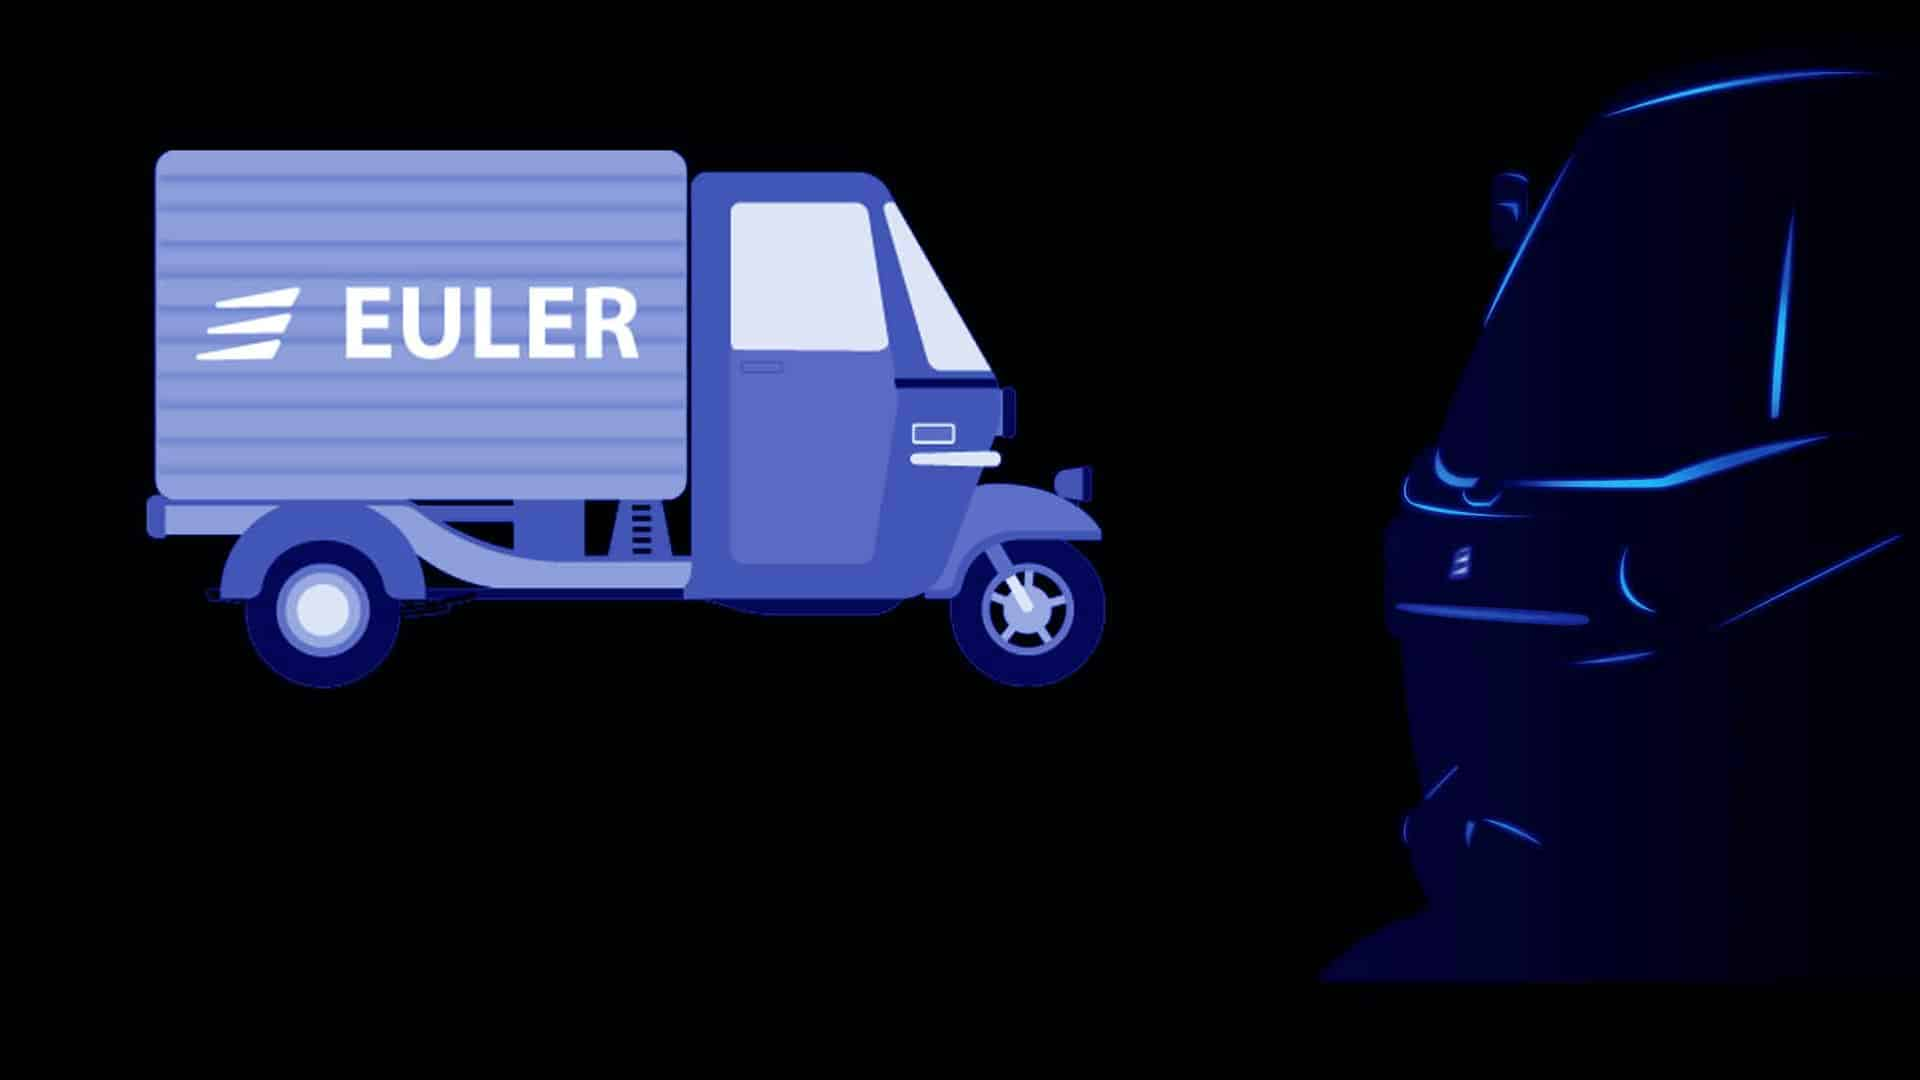 Euler Motors bags order for 2,500 units from e-commerce players